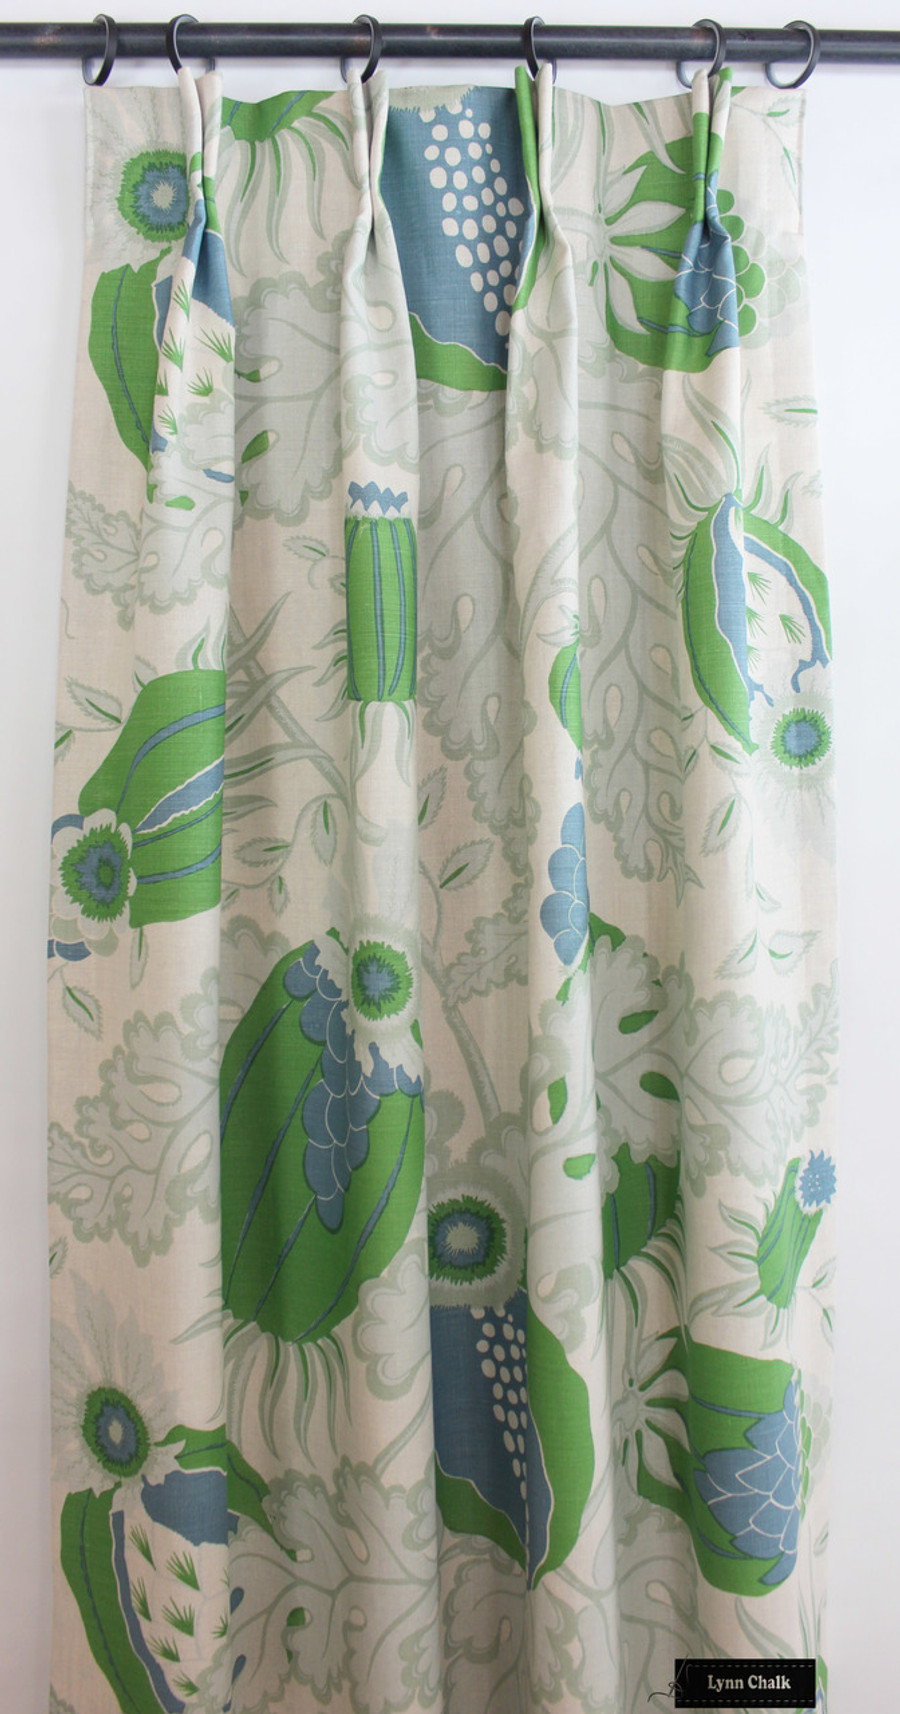 Christopher Farr Carnival Drapes in Green (comes in several colors)